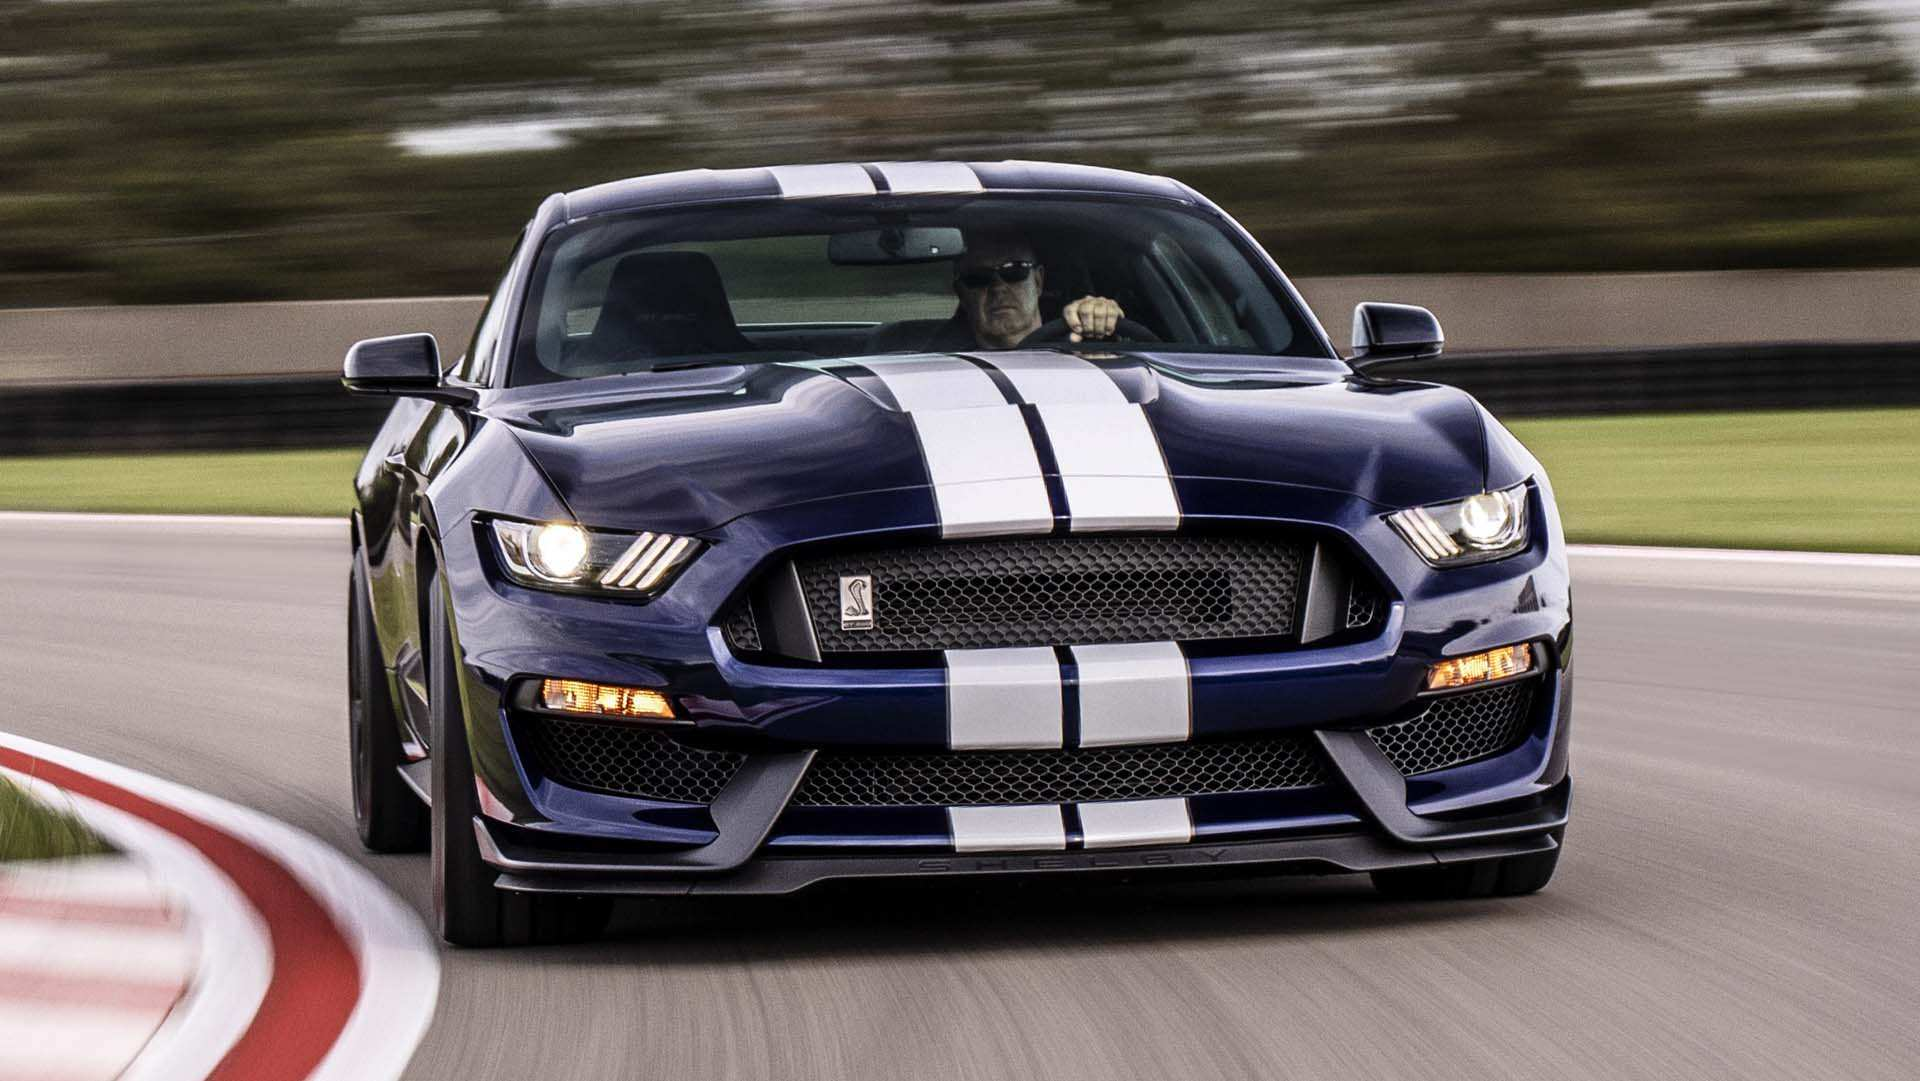 61 The Best 2019 Mustang Redesign